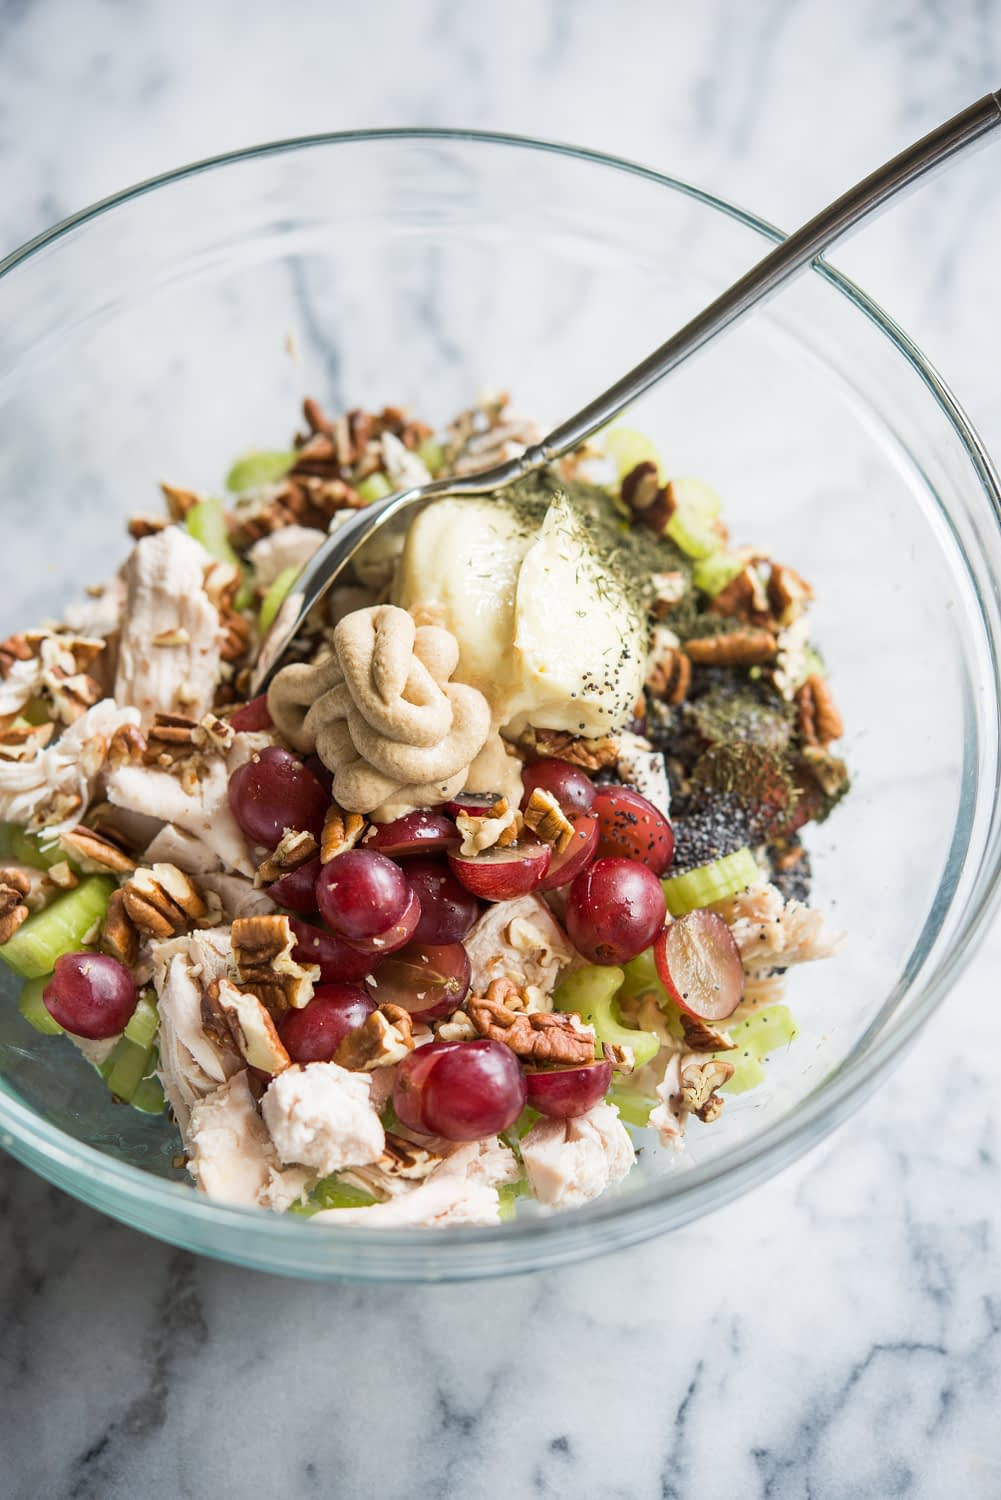 chicken, grapes, pecans, celery, mayo, and mustard in a glass bowl on a marble board